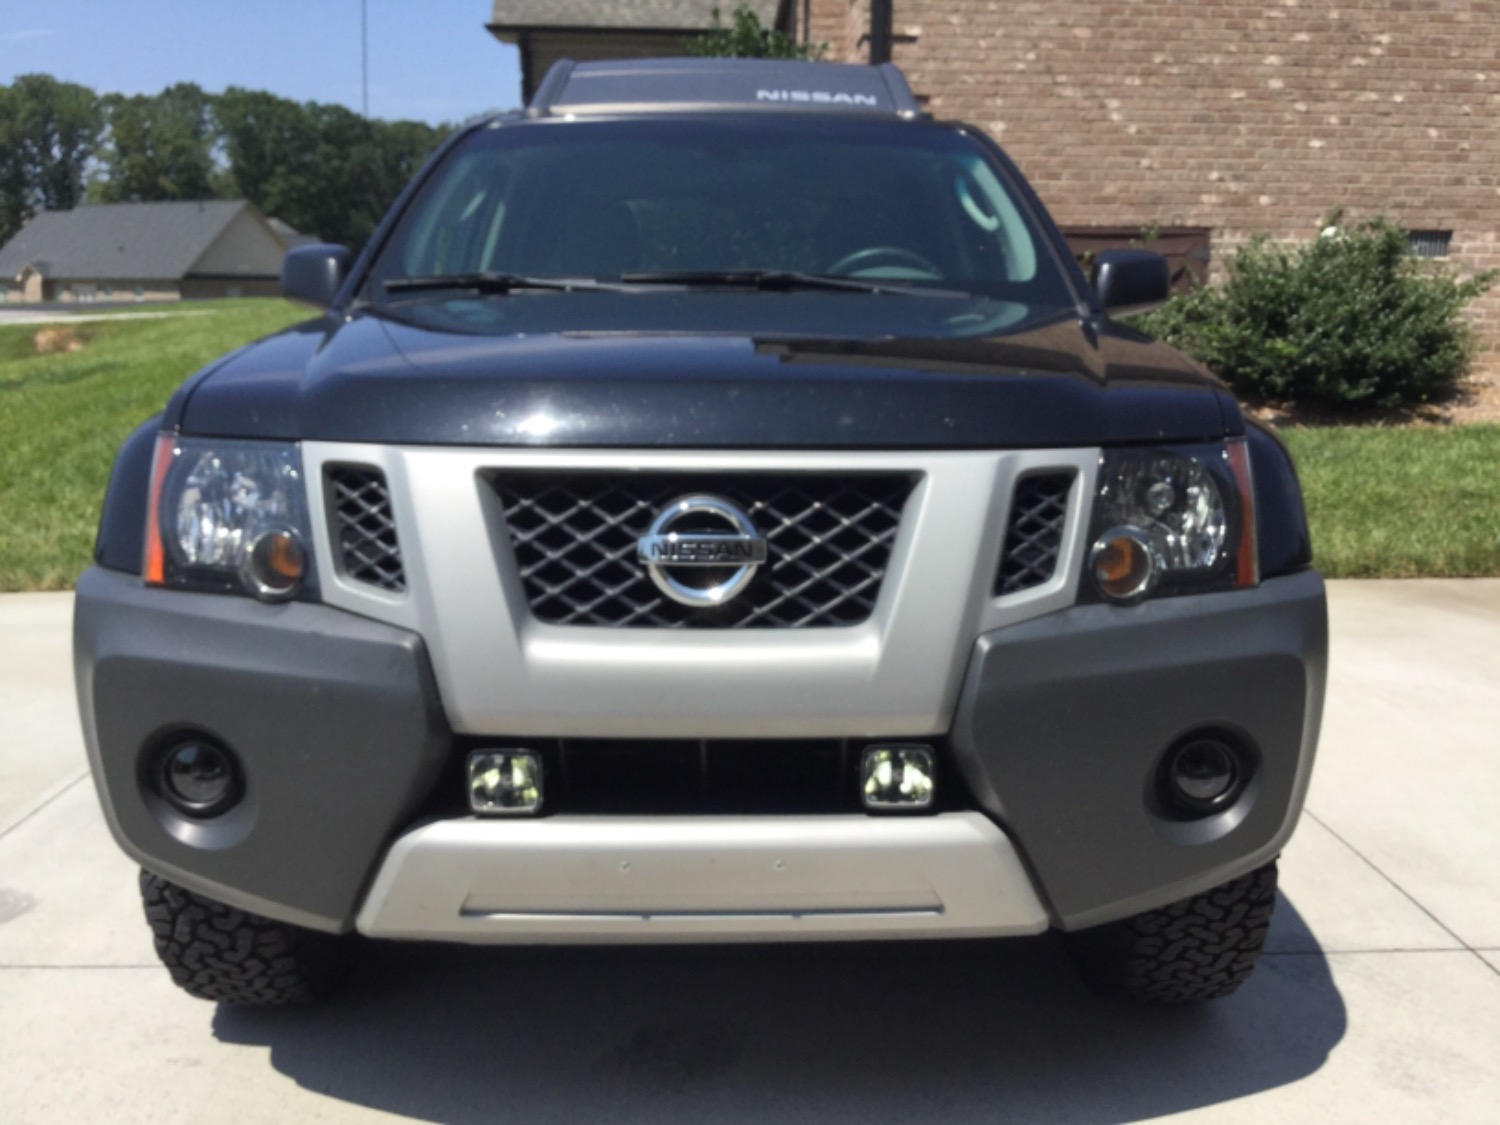 Wiring Kc Lights Xterra Bookmark About Diagram Hilites Gravity Led G34 Driving And Fog Beam Pair Pack Light System Rh Kchilites Com Guide Daylighter